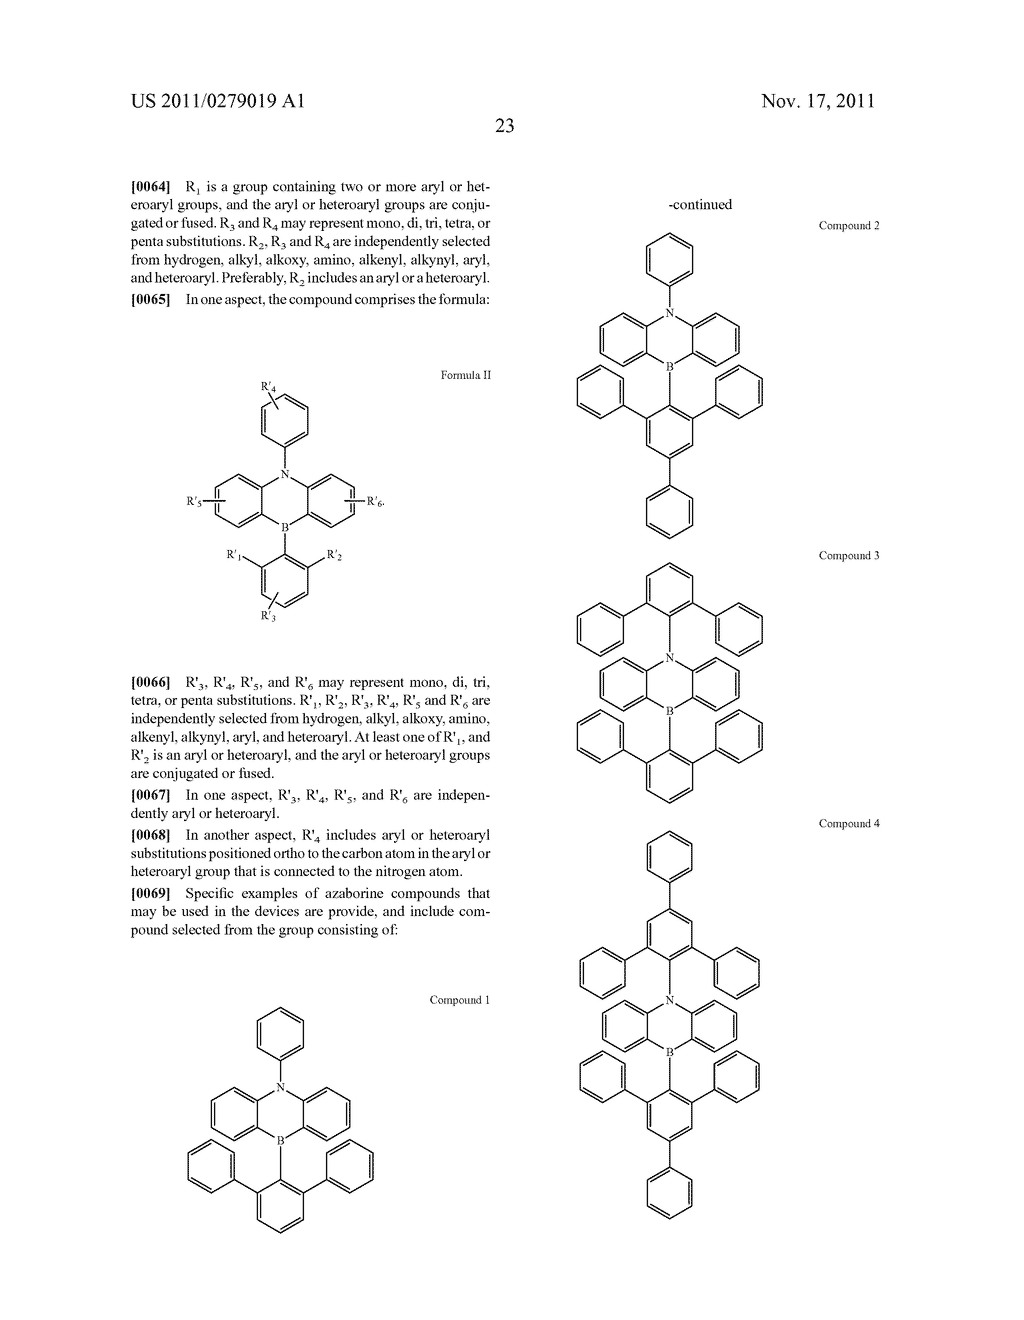 AZABORININE COMPOUNDS AS HOST MATERIALS AND DOPANTS FOR PHOLEDS - diagram, schematic, and image 30